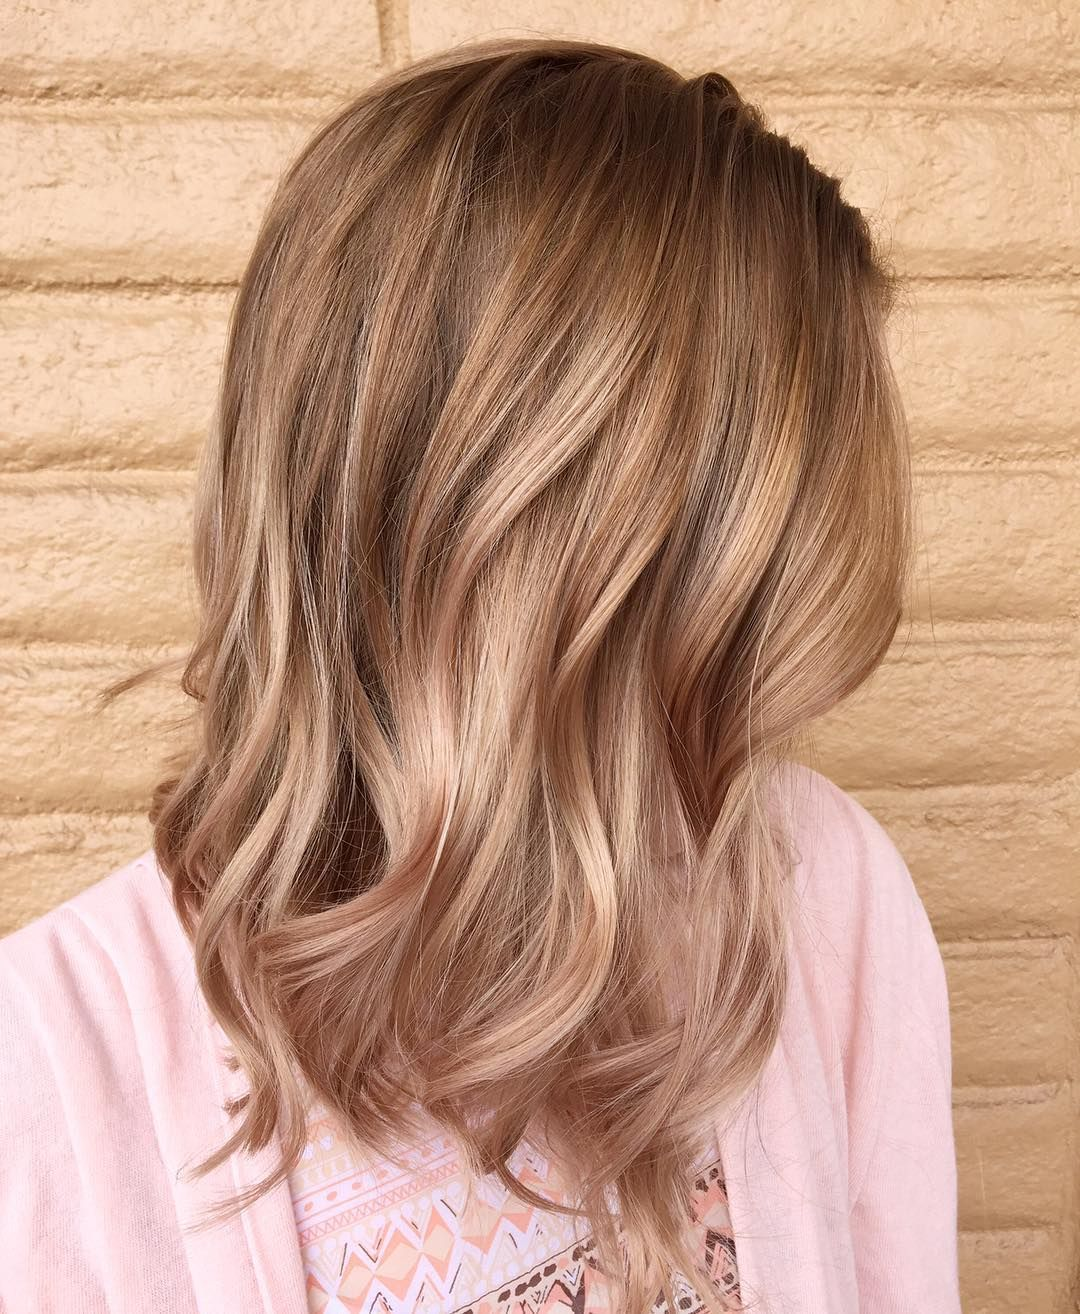 how do you neutralize red tones in blonde hair